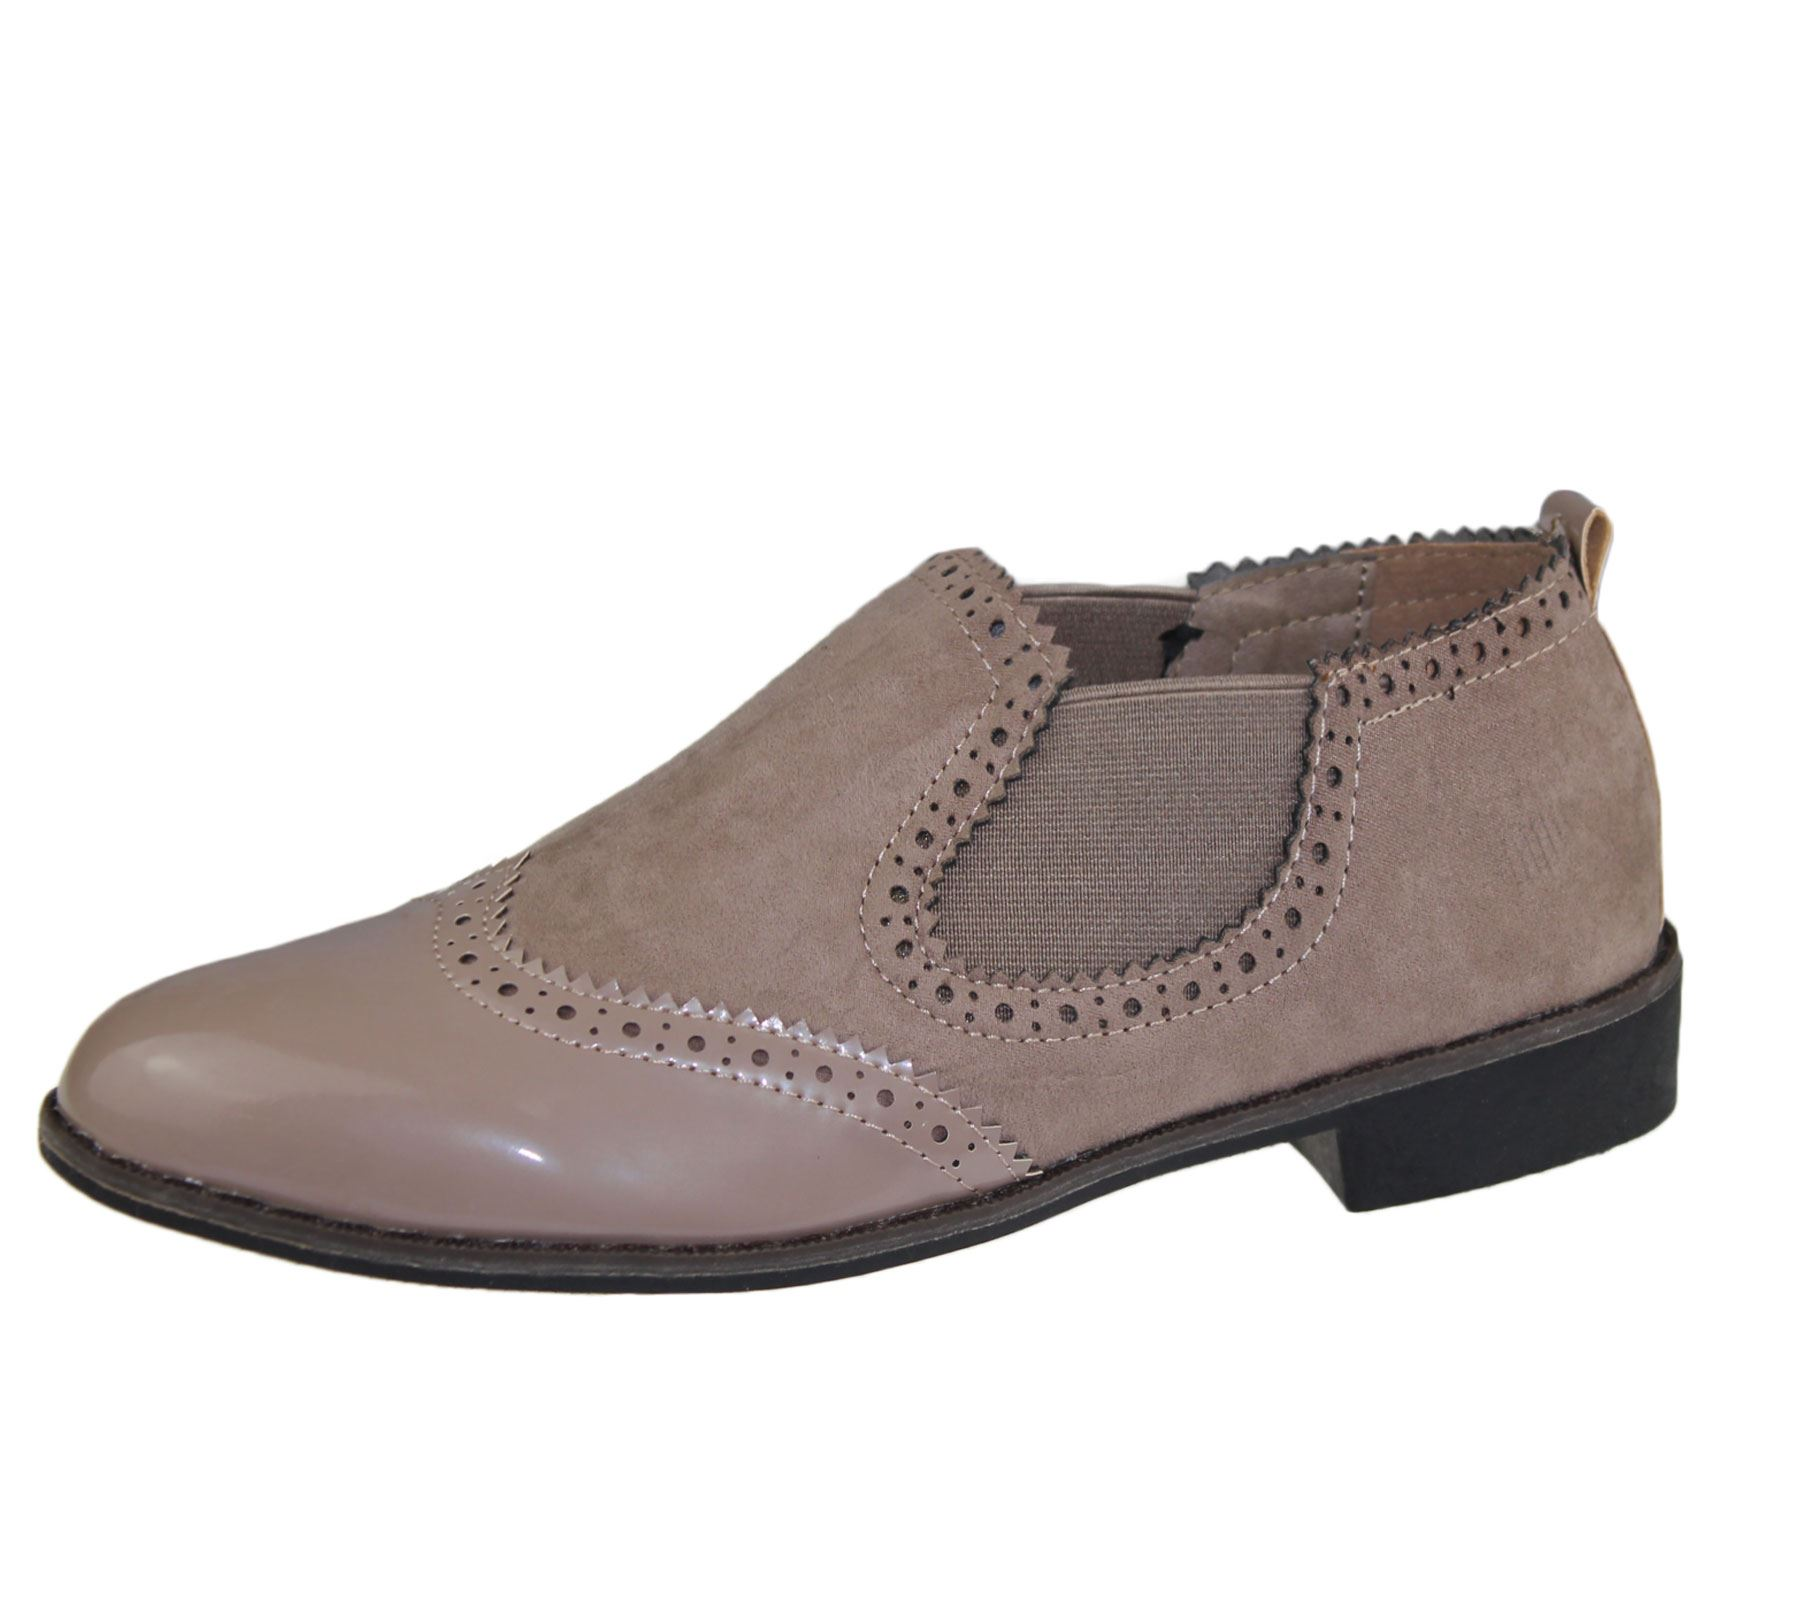 Find Women's wide width shoes by Eastland. Casual classic leather boots, oxfords, slip ons, penny loafers, boat shoes & sandals.